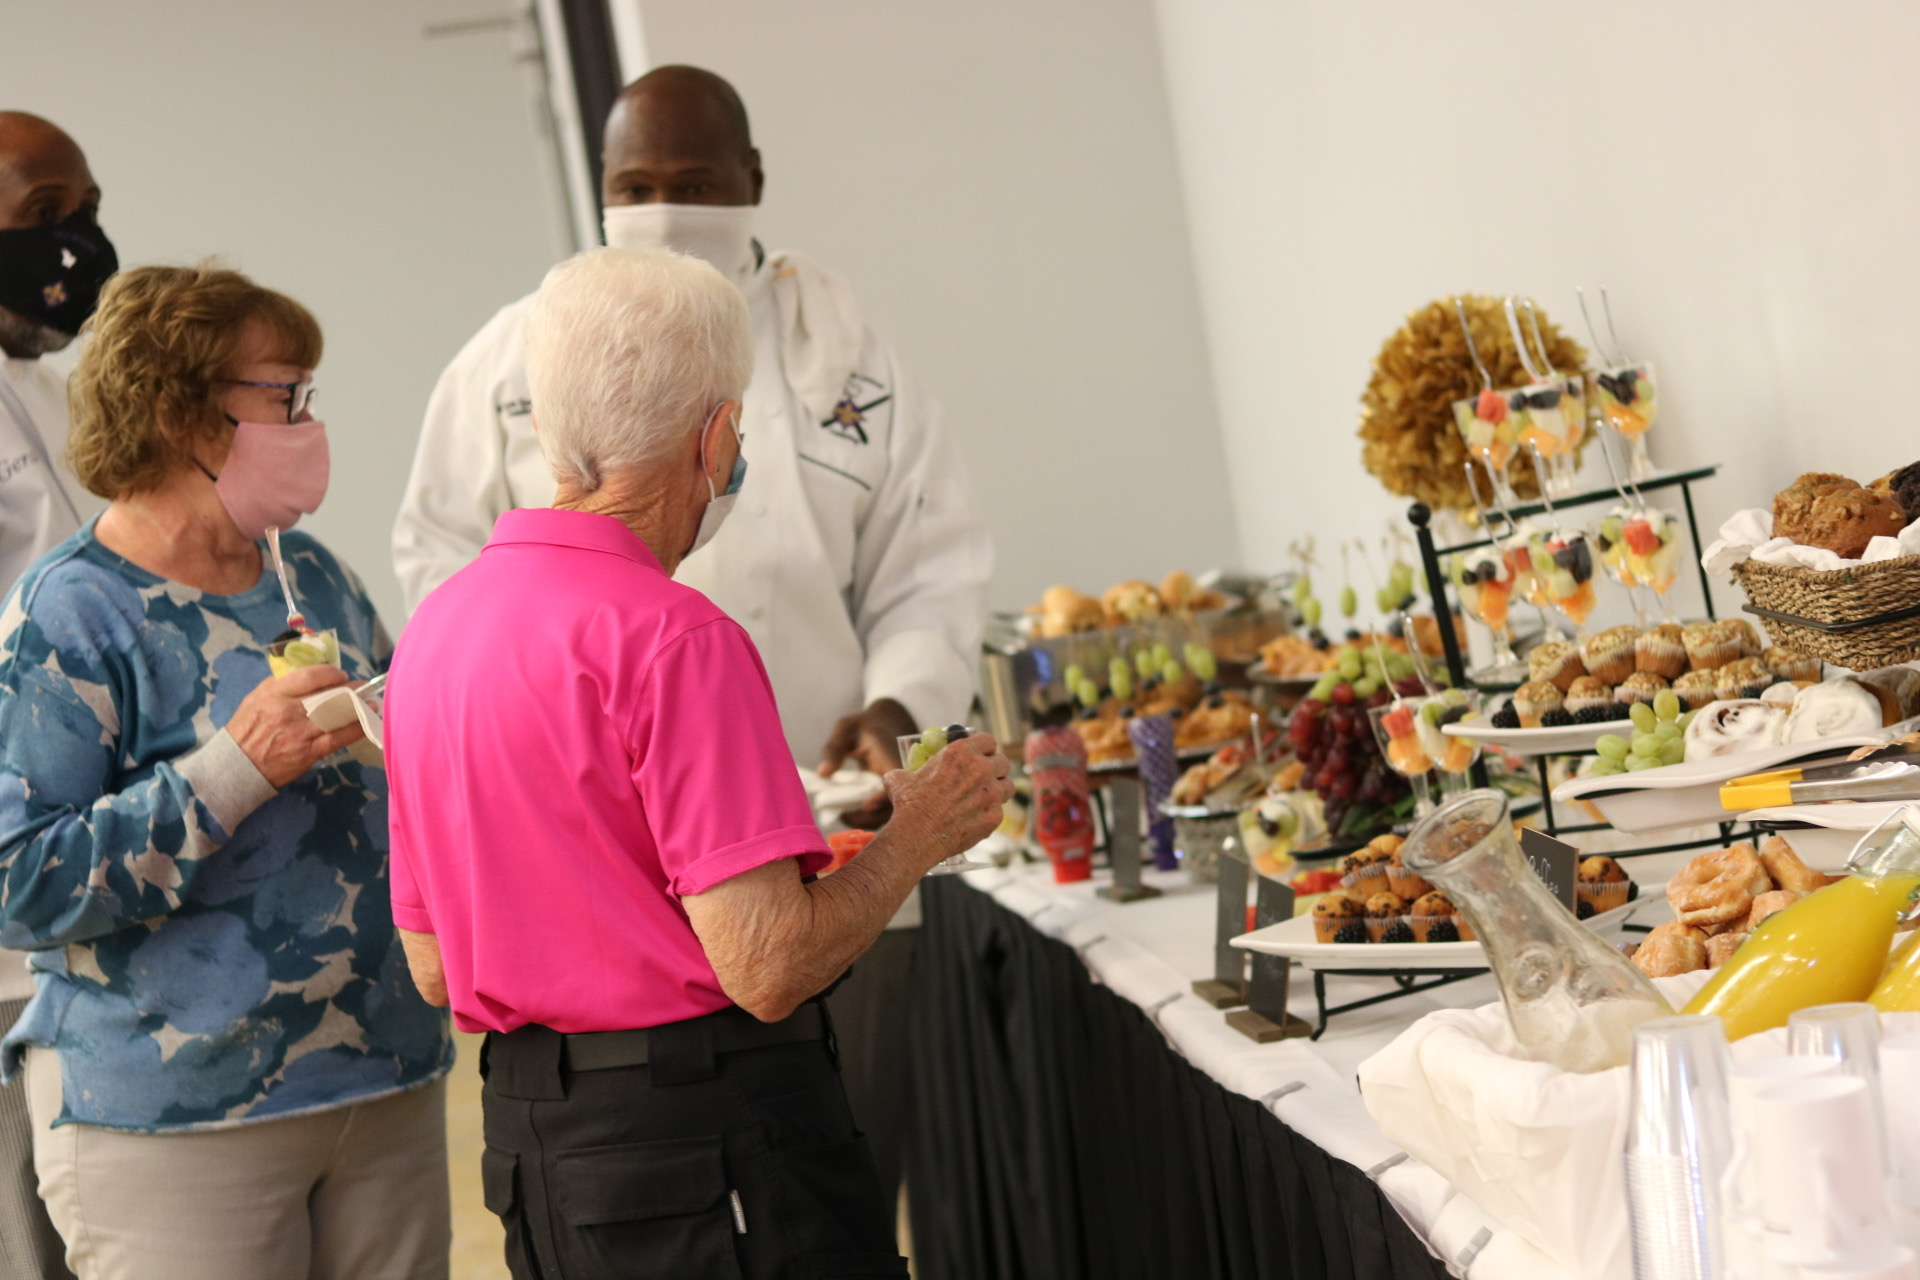 Executive chef helping serve guest at breakfast